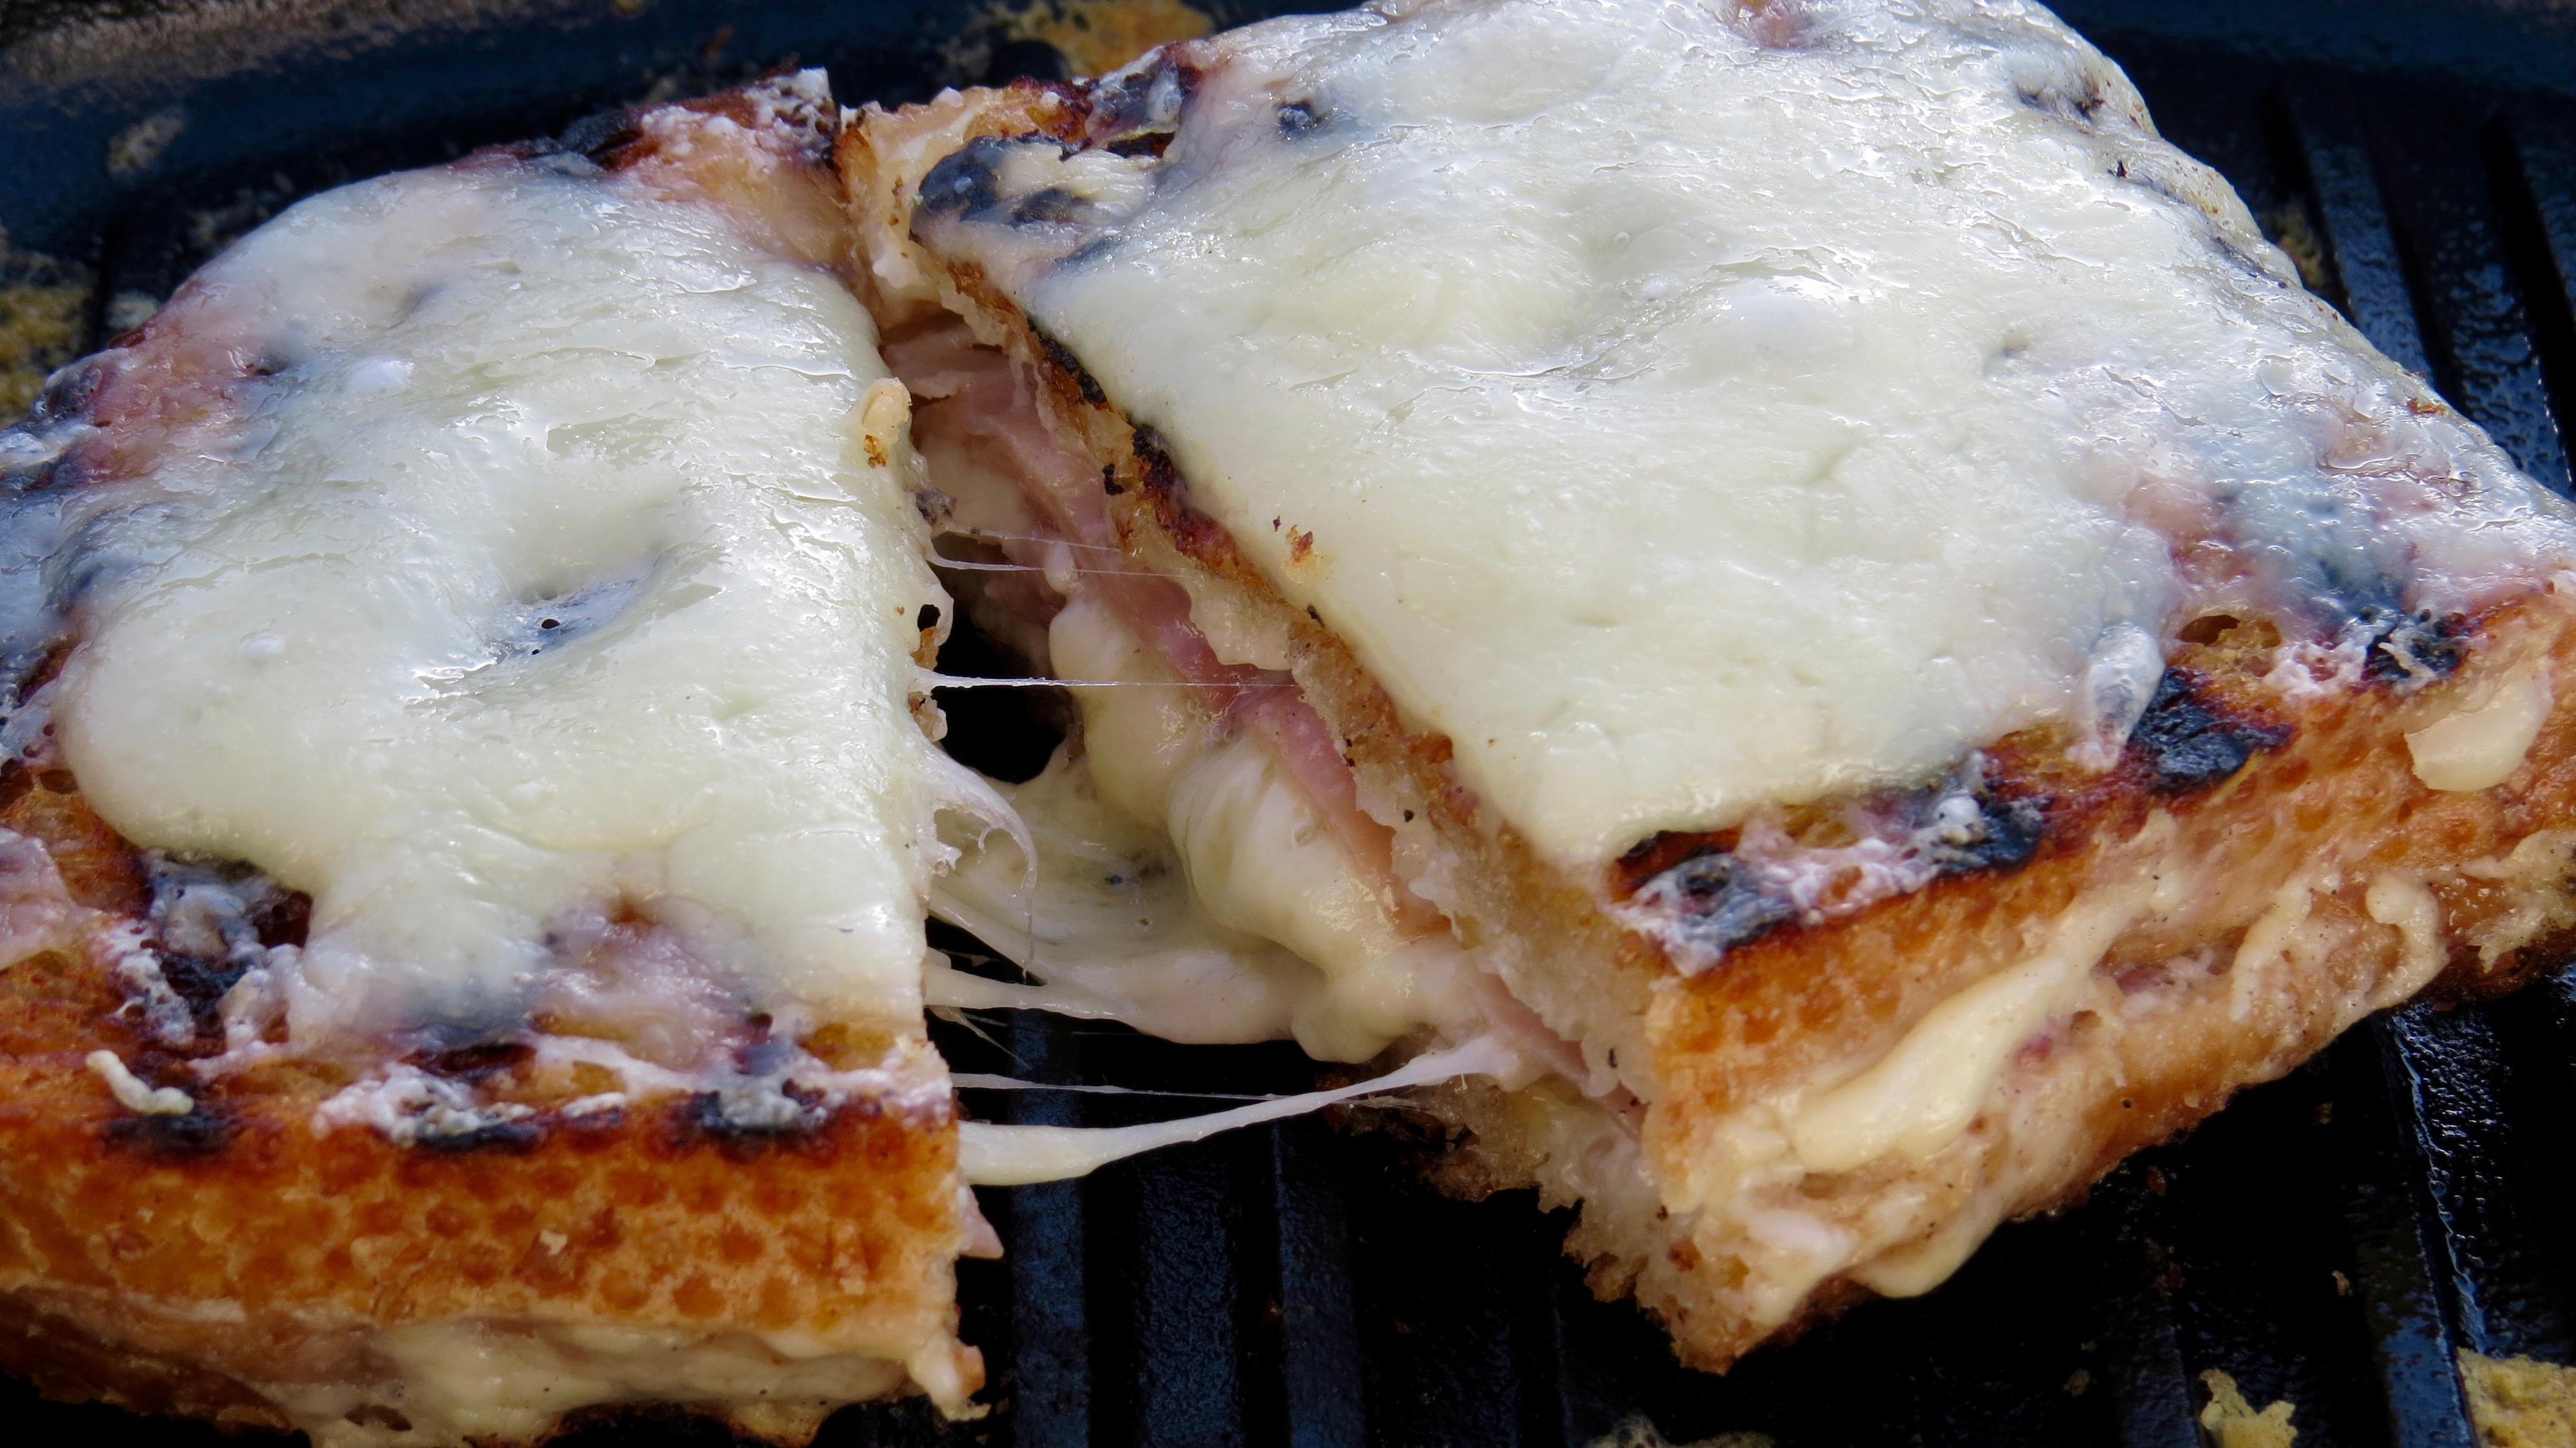 David Lebovitz's CROQUE MONSIEUR from My Paris Kitchen cookbook